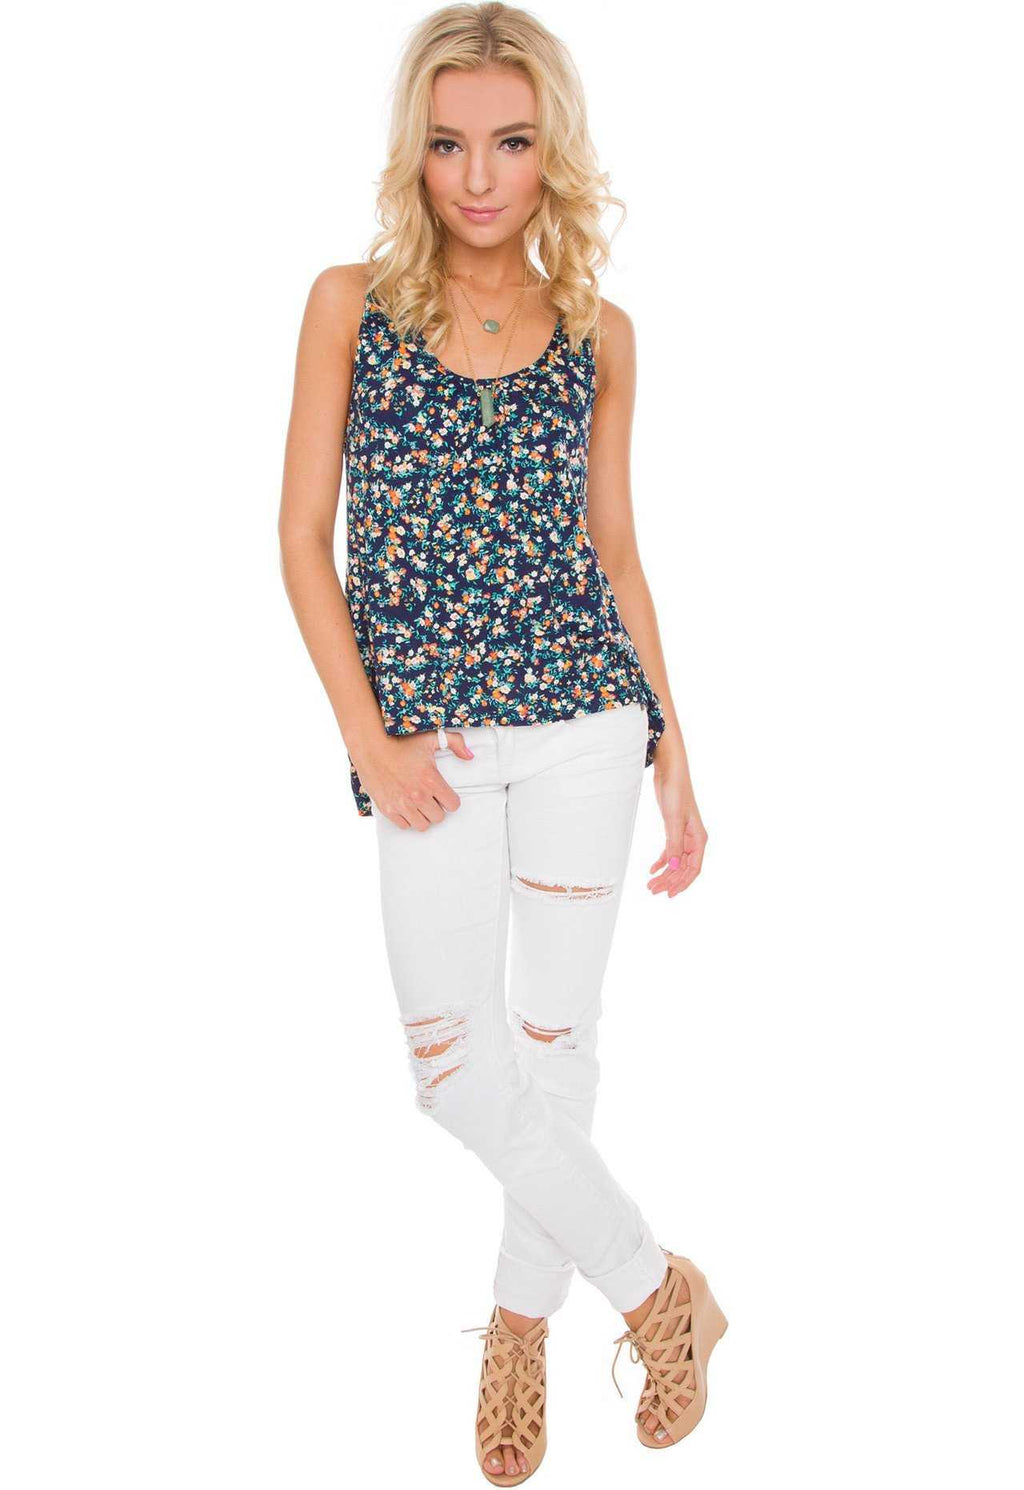 Tiana Floral Top In Navy Inside Flats Cariana 38 Tops